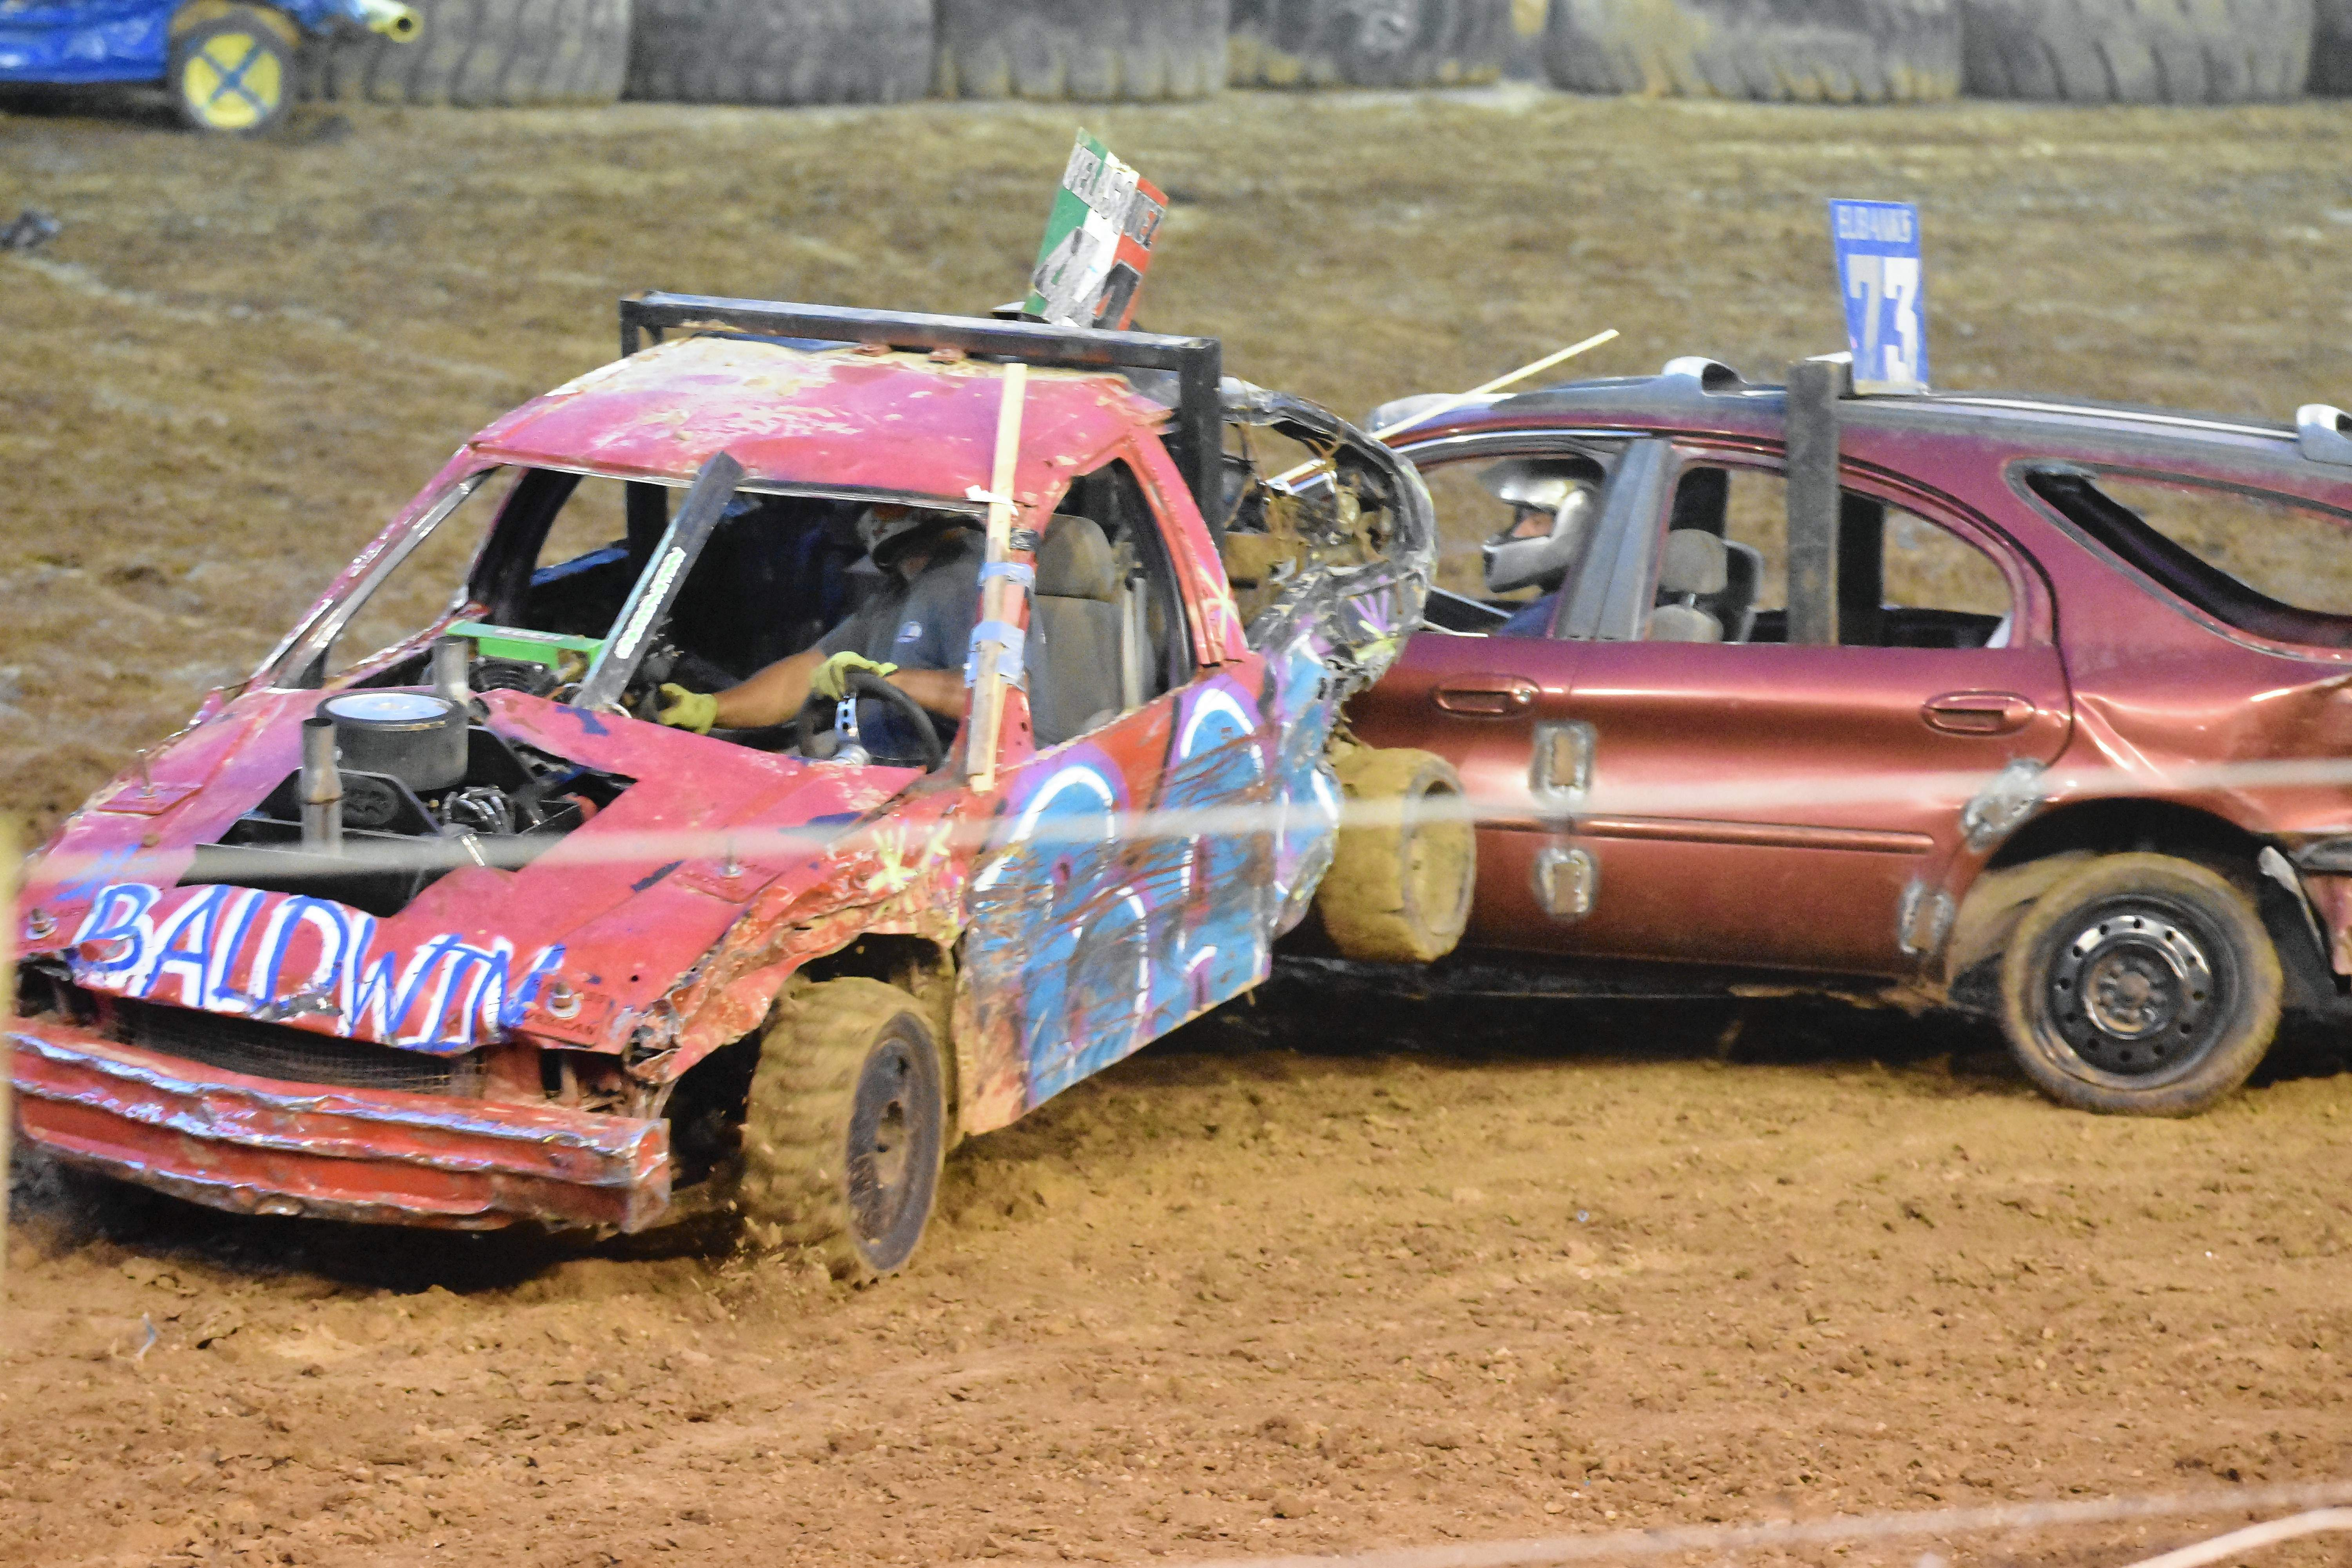 """A car rides its rear end up on a competitor during the """"mini car"""" segment of the demolition derby Saturday night."""